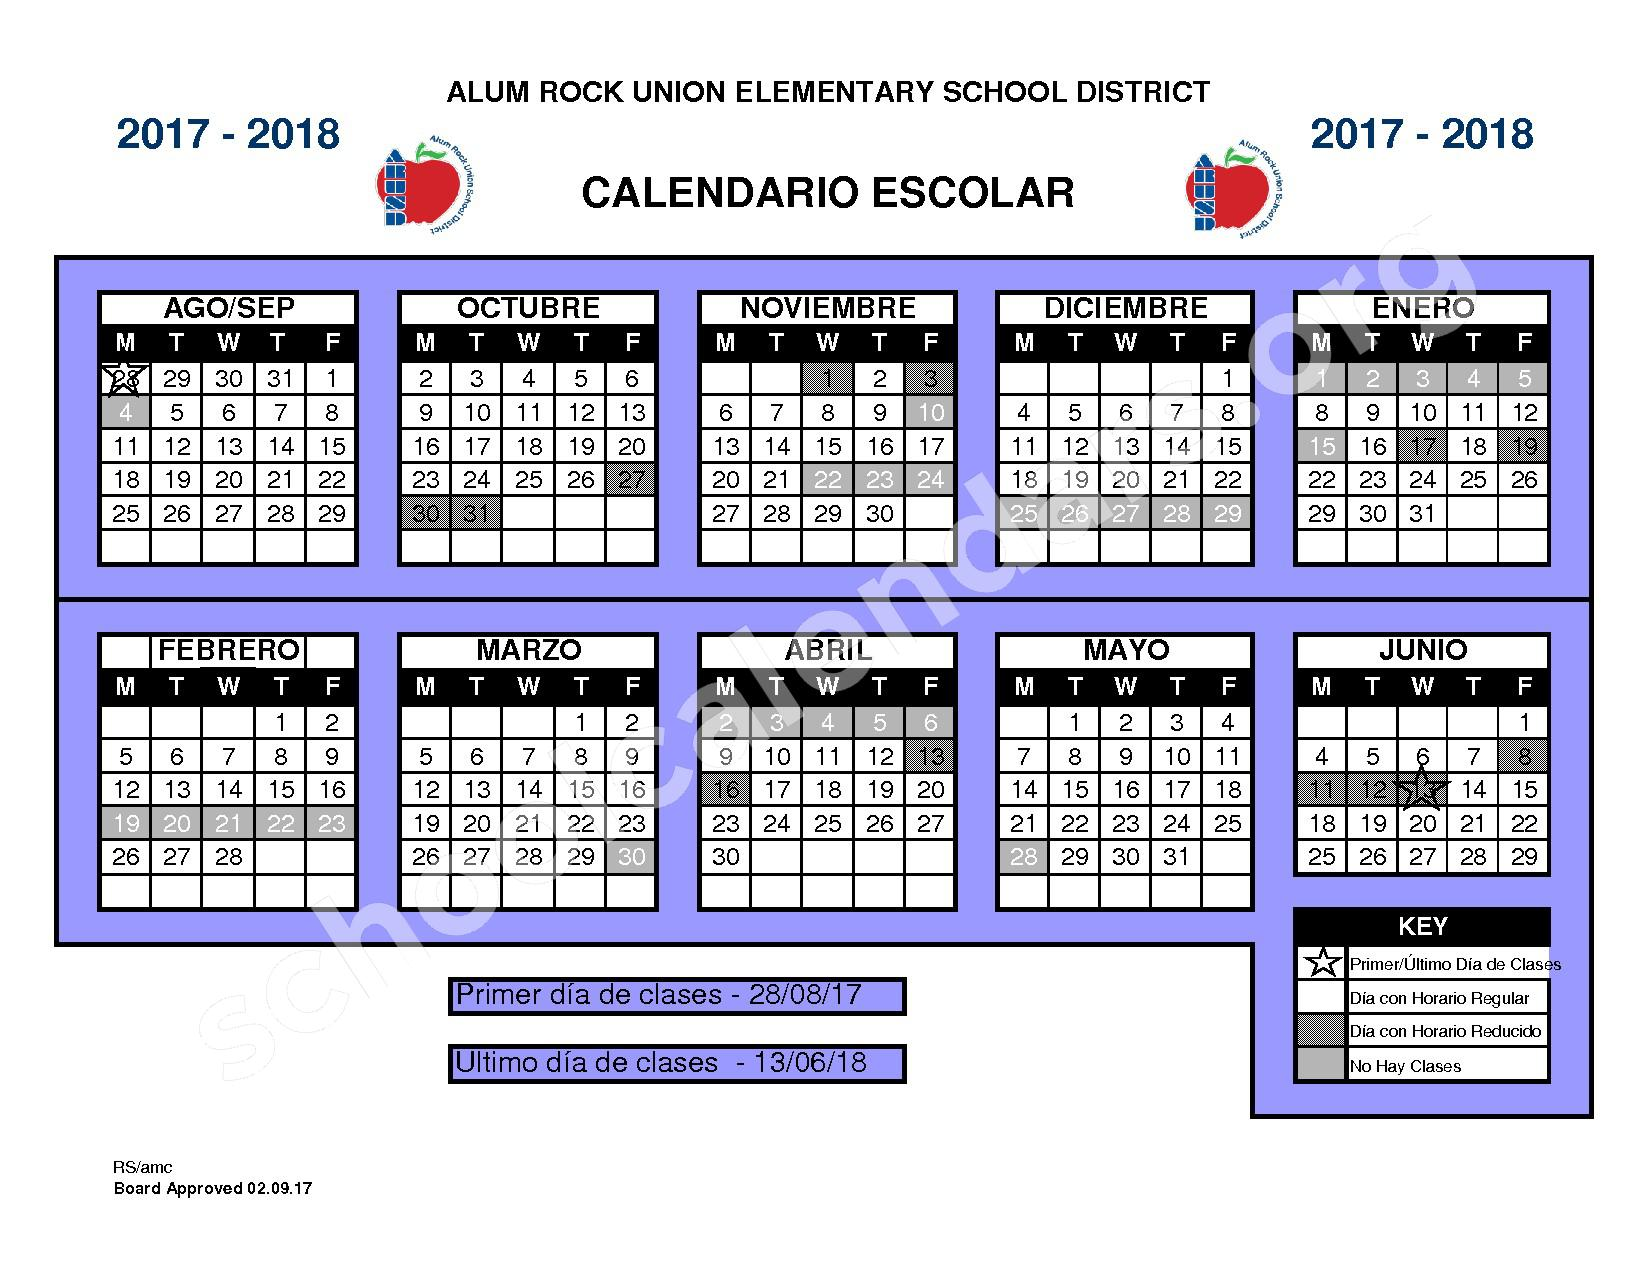 2017 - 2018 Calendario Escolar – Alum Rock Union Elementary School District – page 1